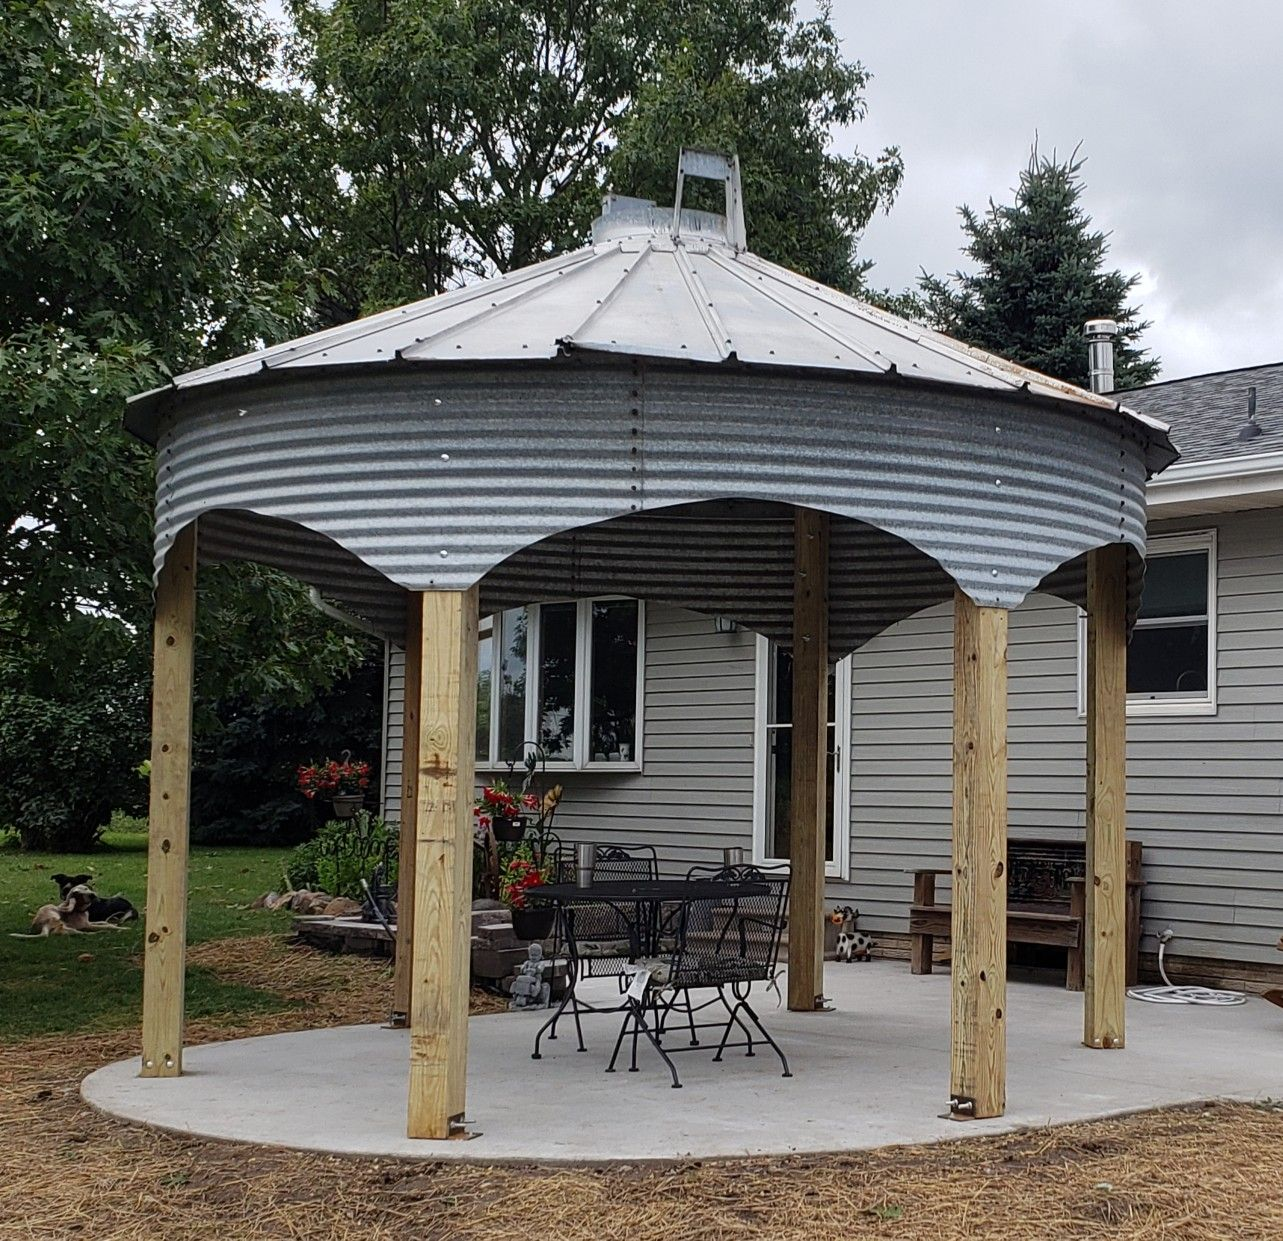 Repurposed 14 Foot Grain Bin Into Patio Gazebo Gazebo Patio